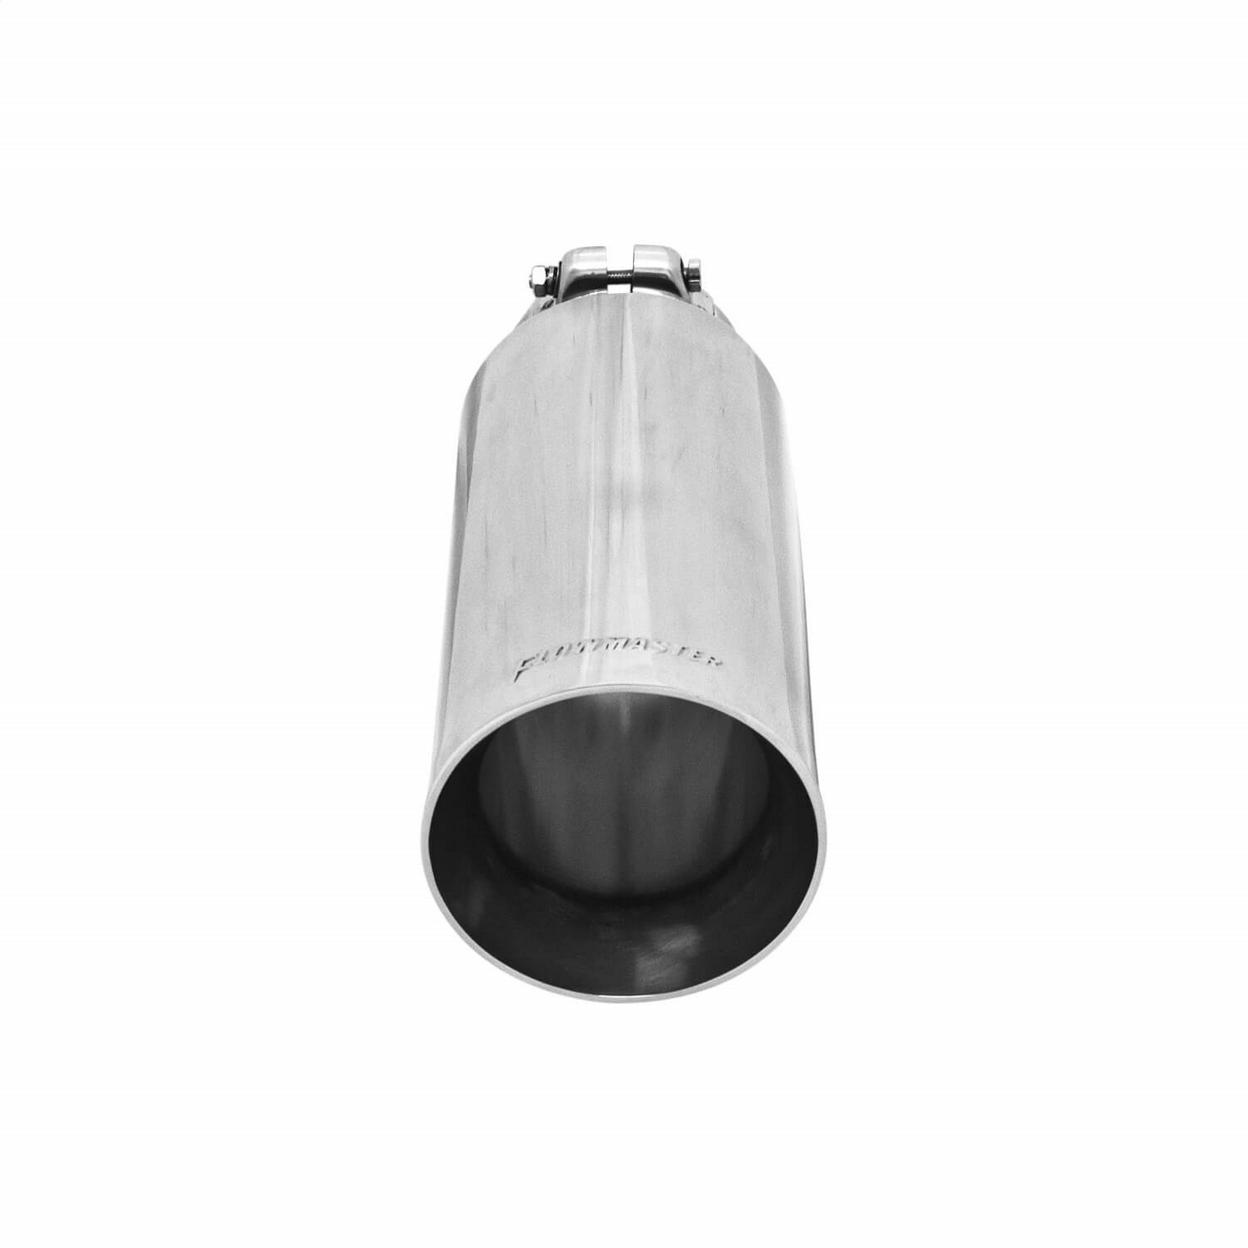 Exhaust Tip - 4.00 in. Angle Cut Polished SS Fits 3.00 in. Tubing - Clamp on